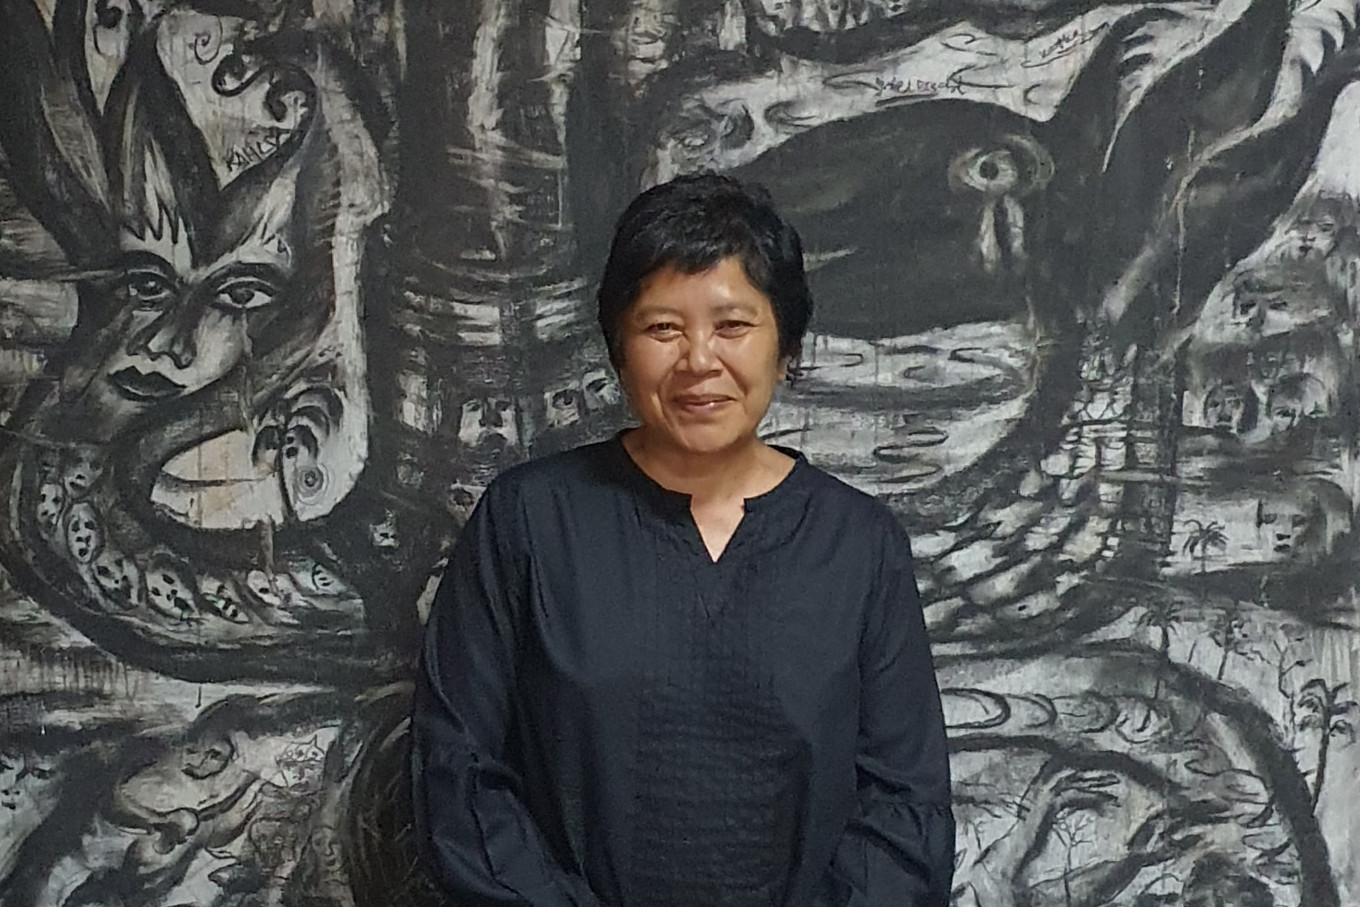 A path forward for Indonesian art during troubled times: Dialogue with Andonowati